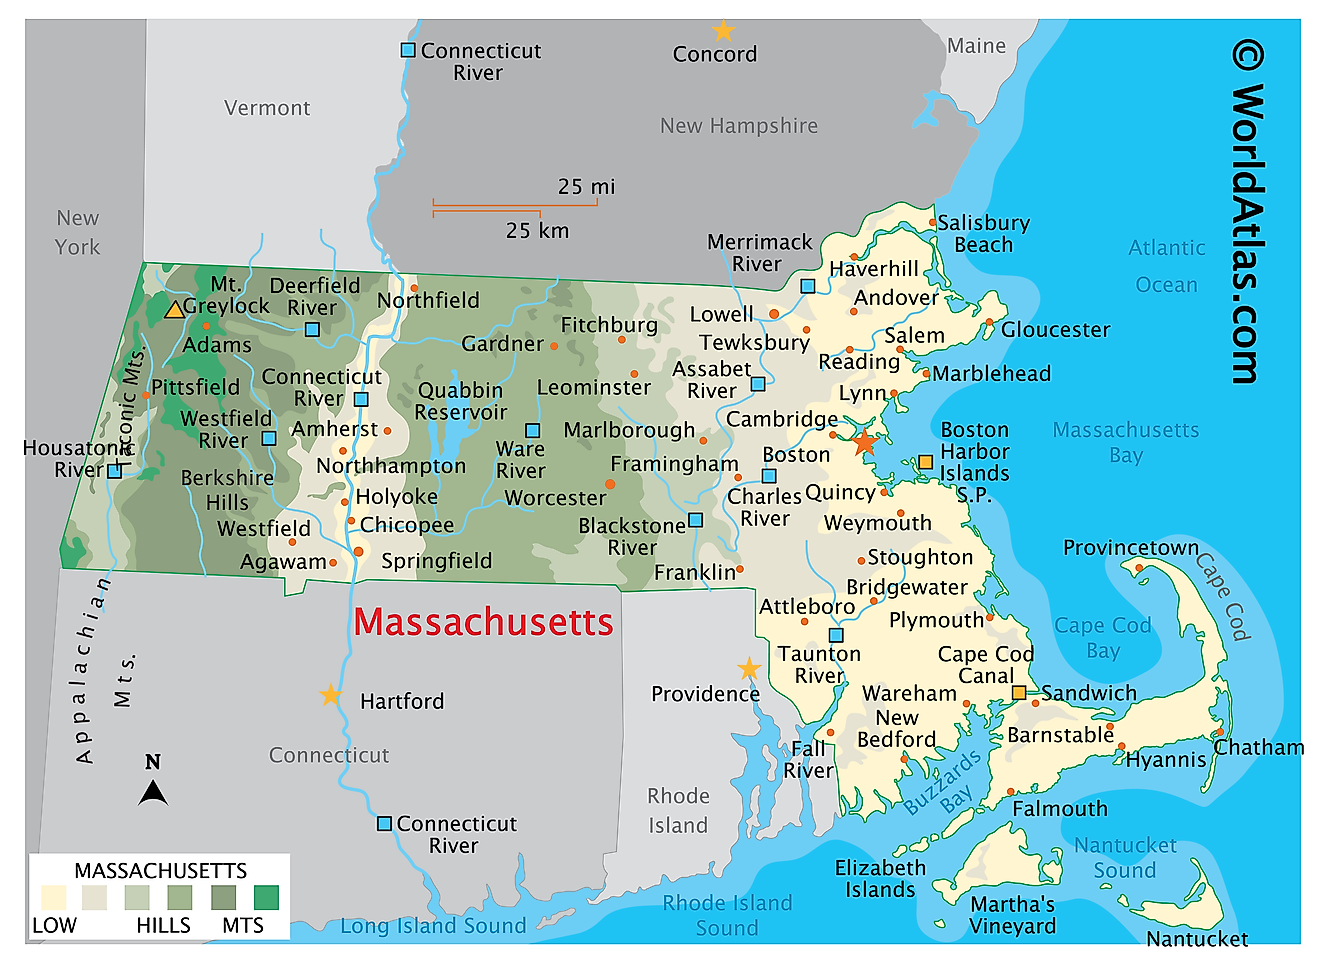 Physical Map of Massachusetts. It shows the physical features of Massachusetts including its mountain ranges, major rivers and lakes.